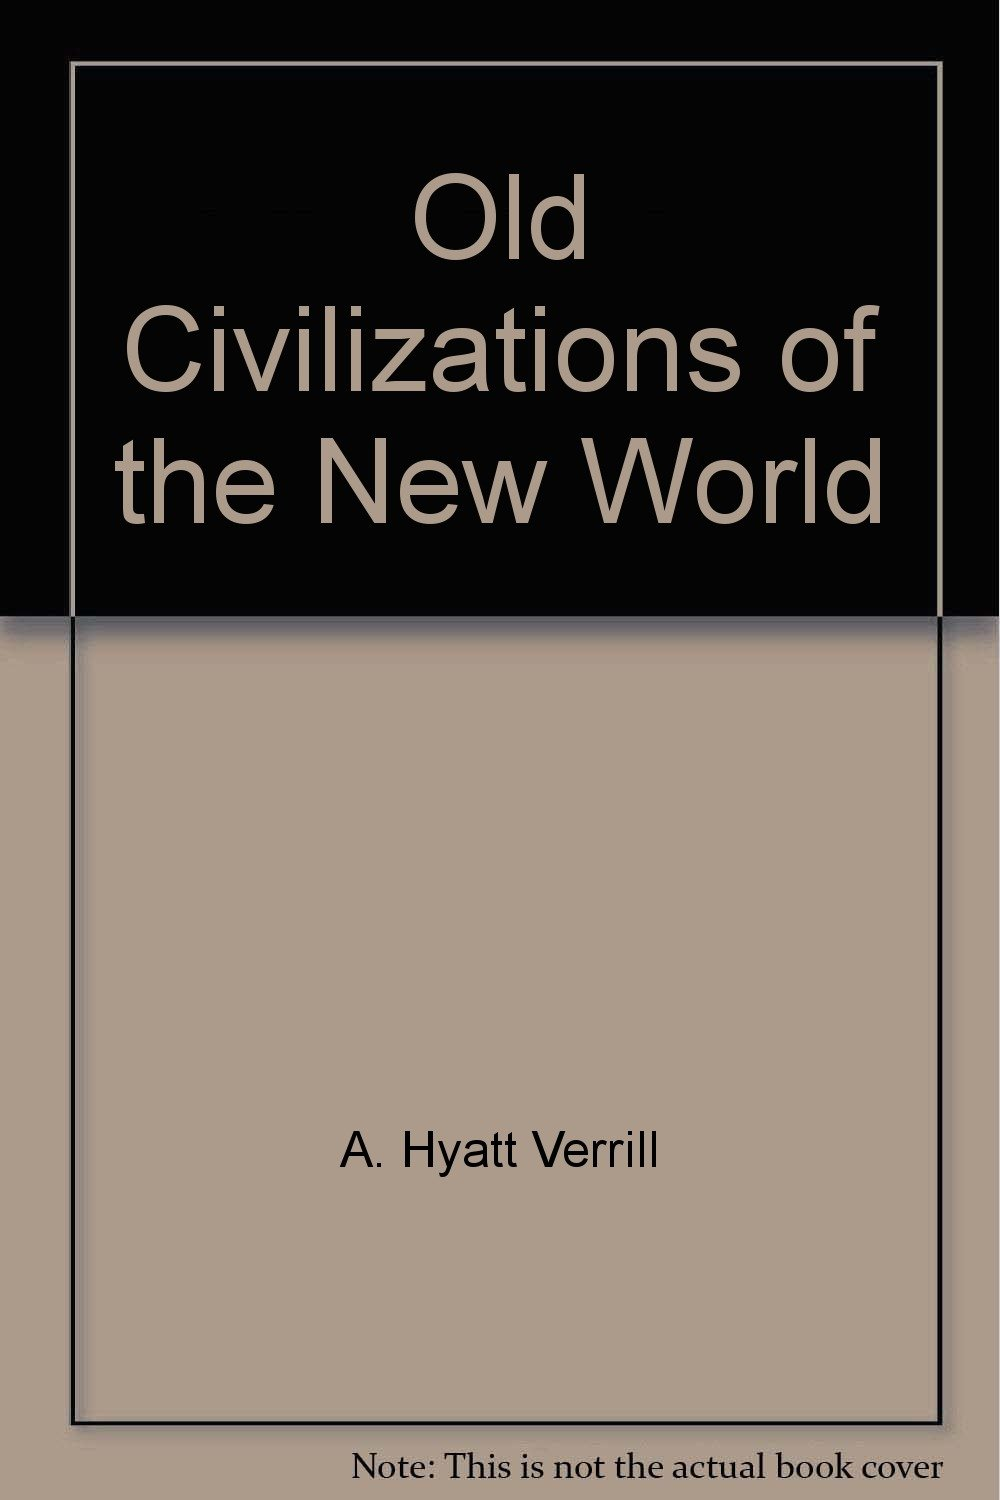 Old civilizations of the new world,